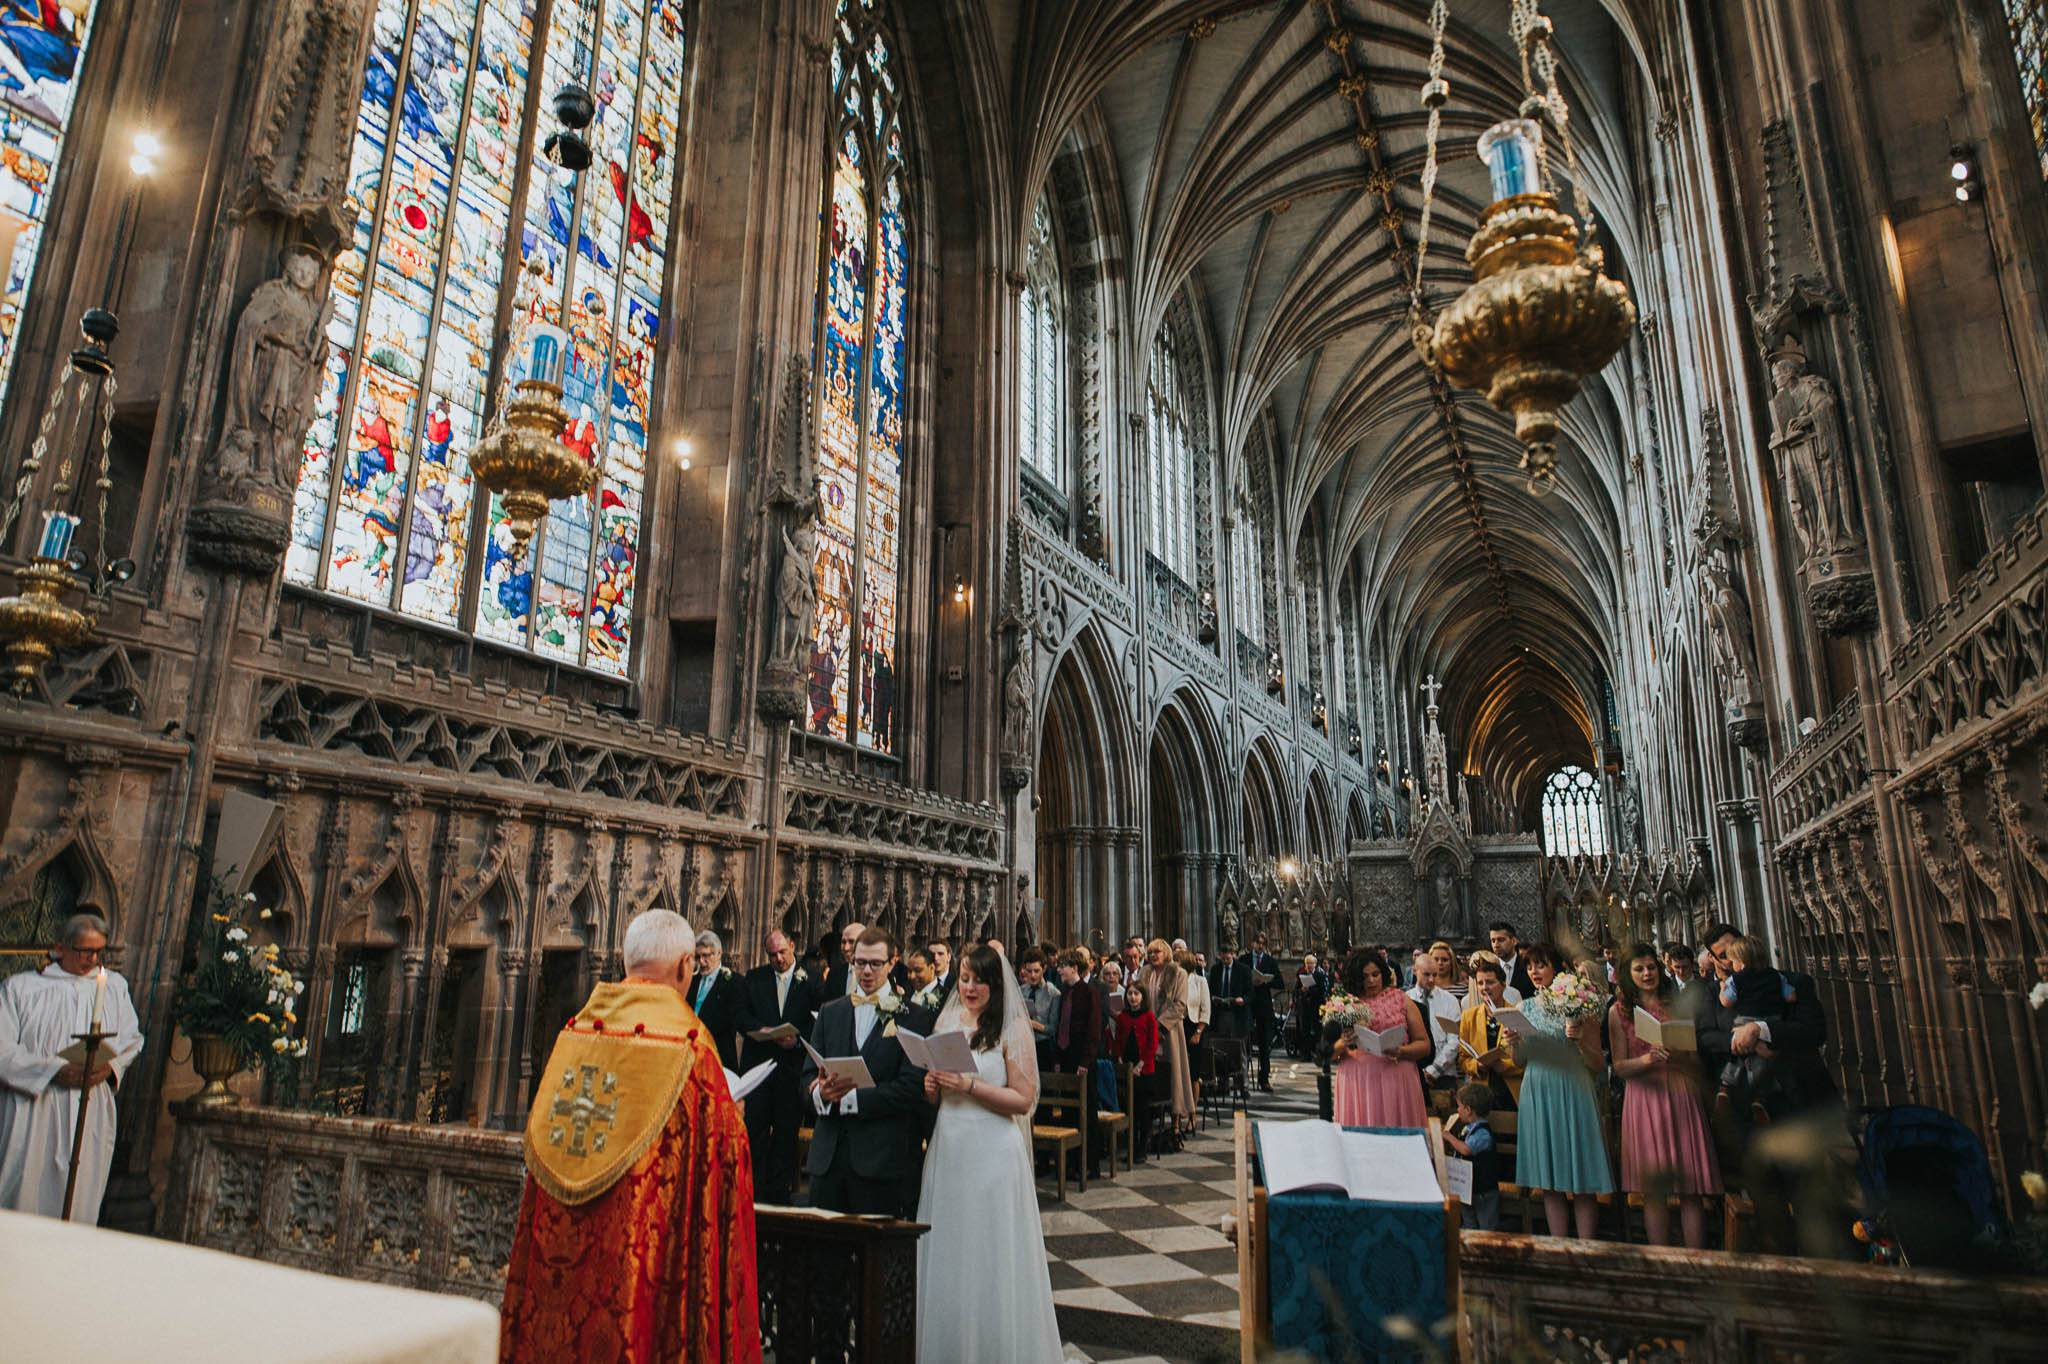 lichfield-cathedral-wedding-photography 7.jpg